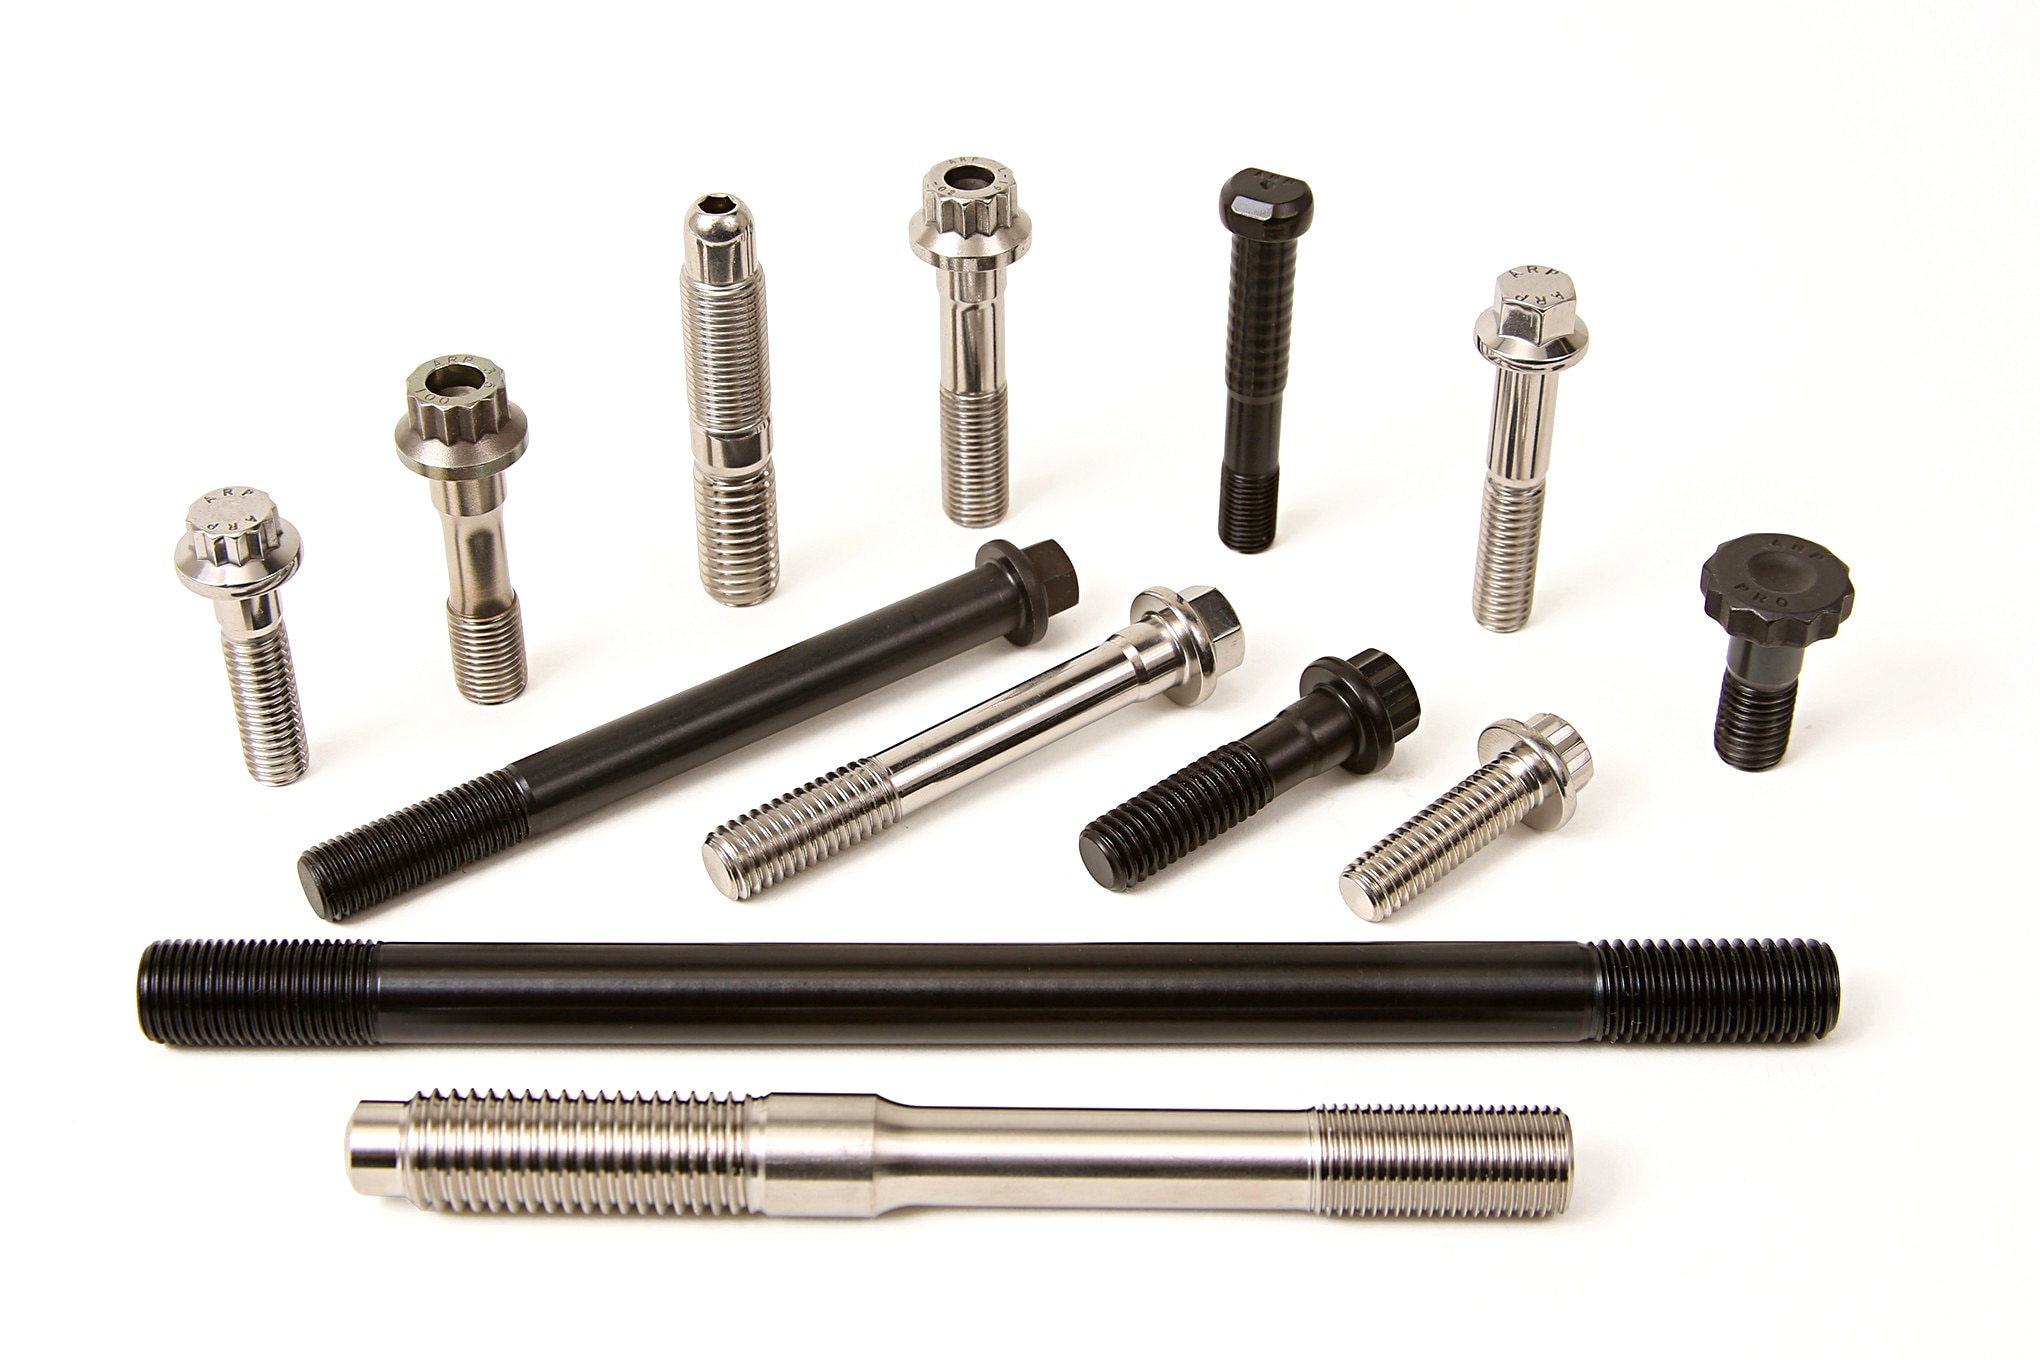 Custom Grade 8 Bolt Assortment Coarse /& Fine Thread